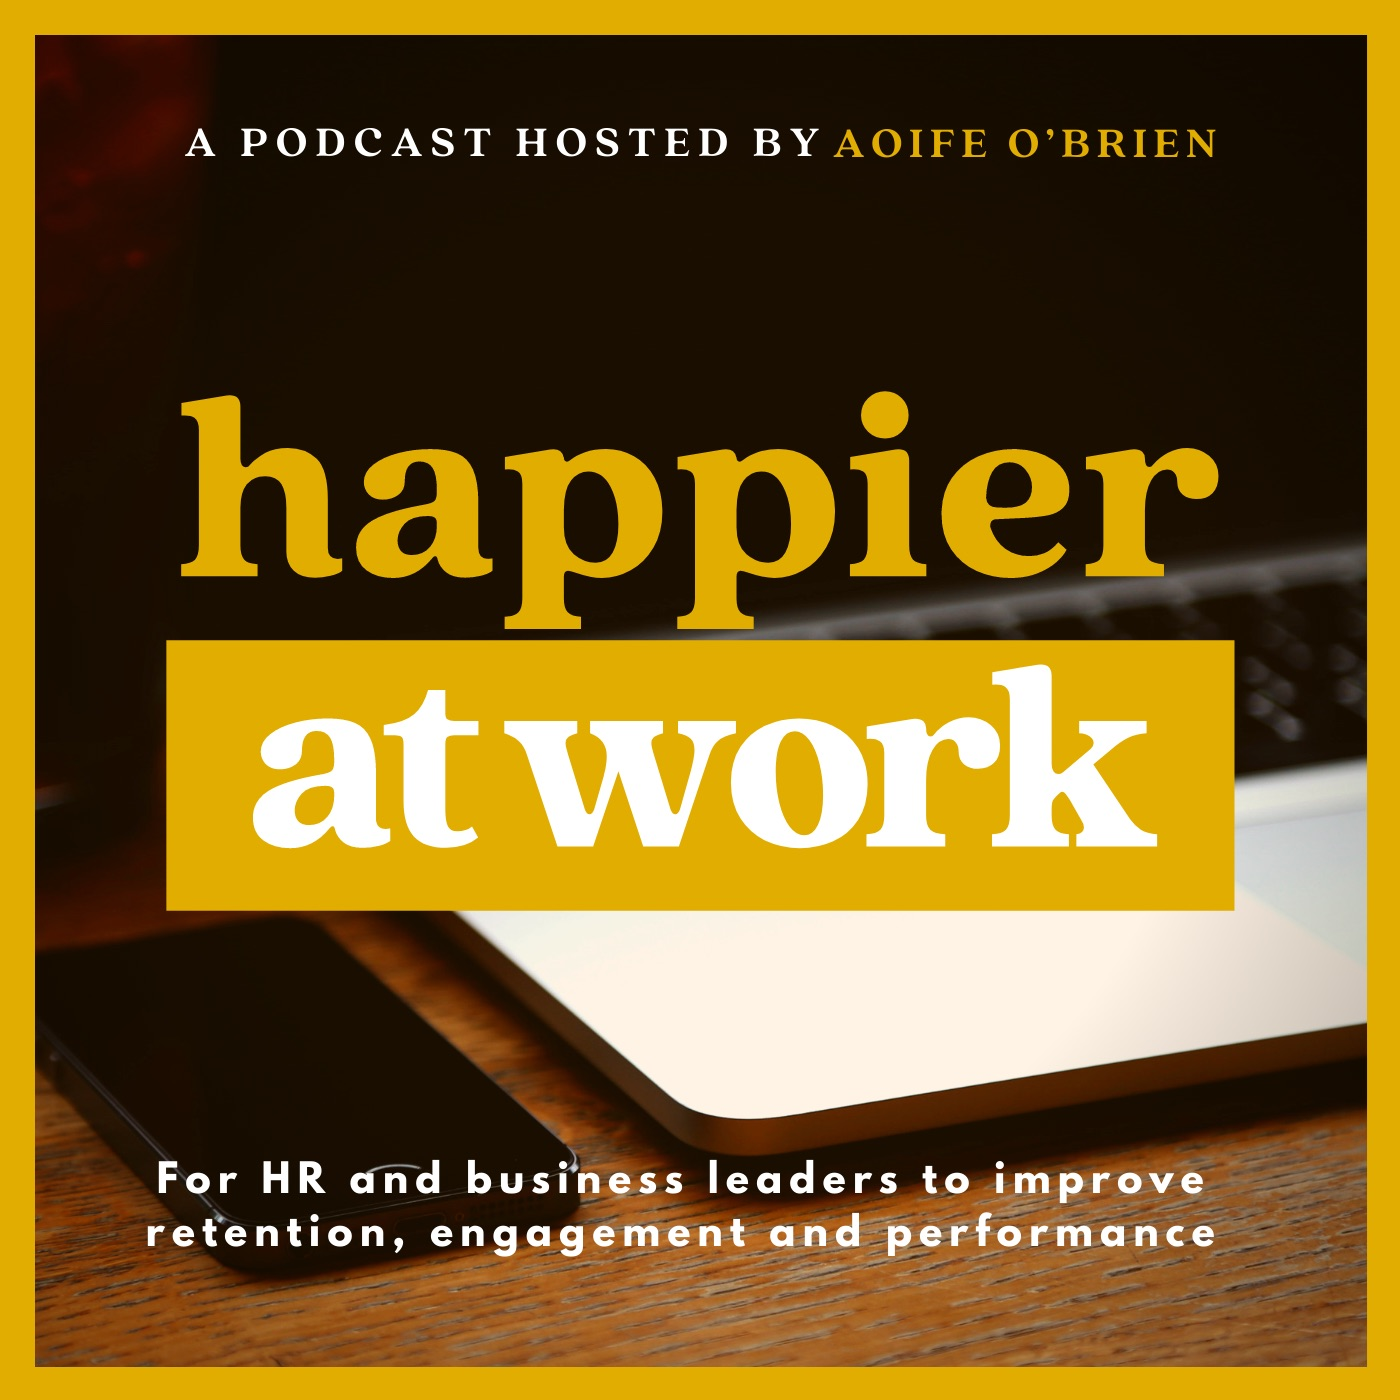 Happier at work podcast